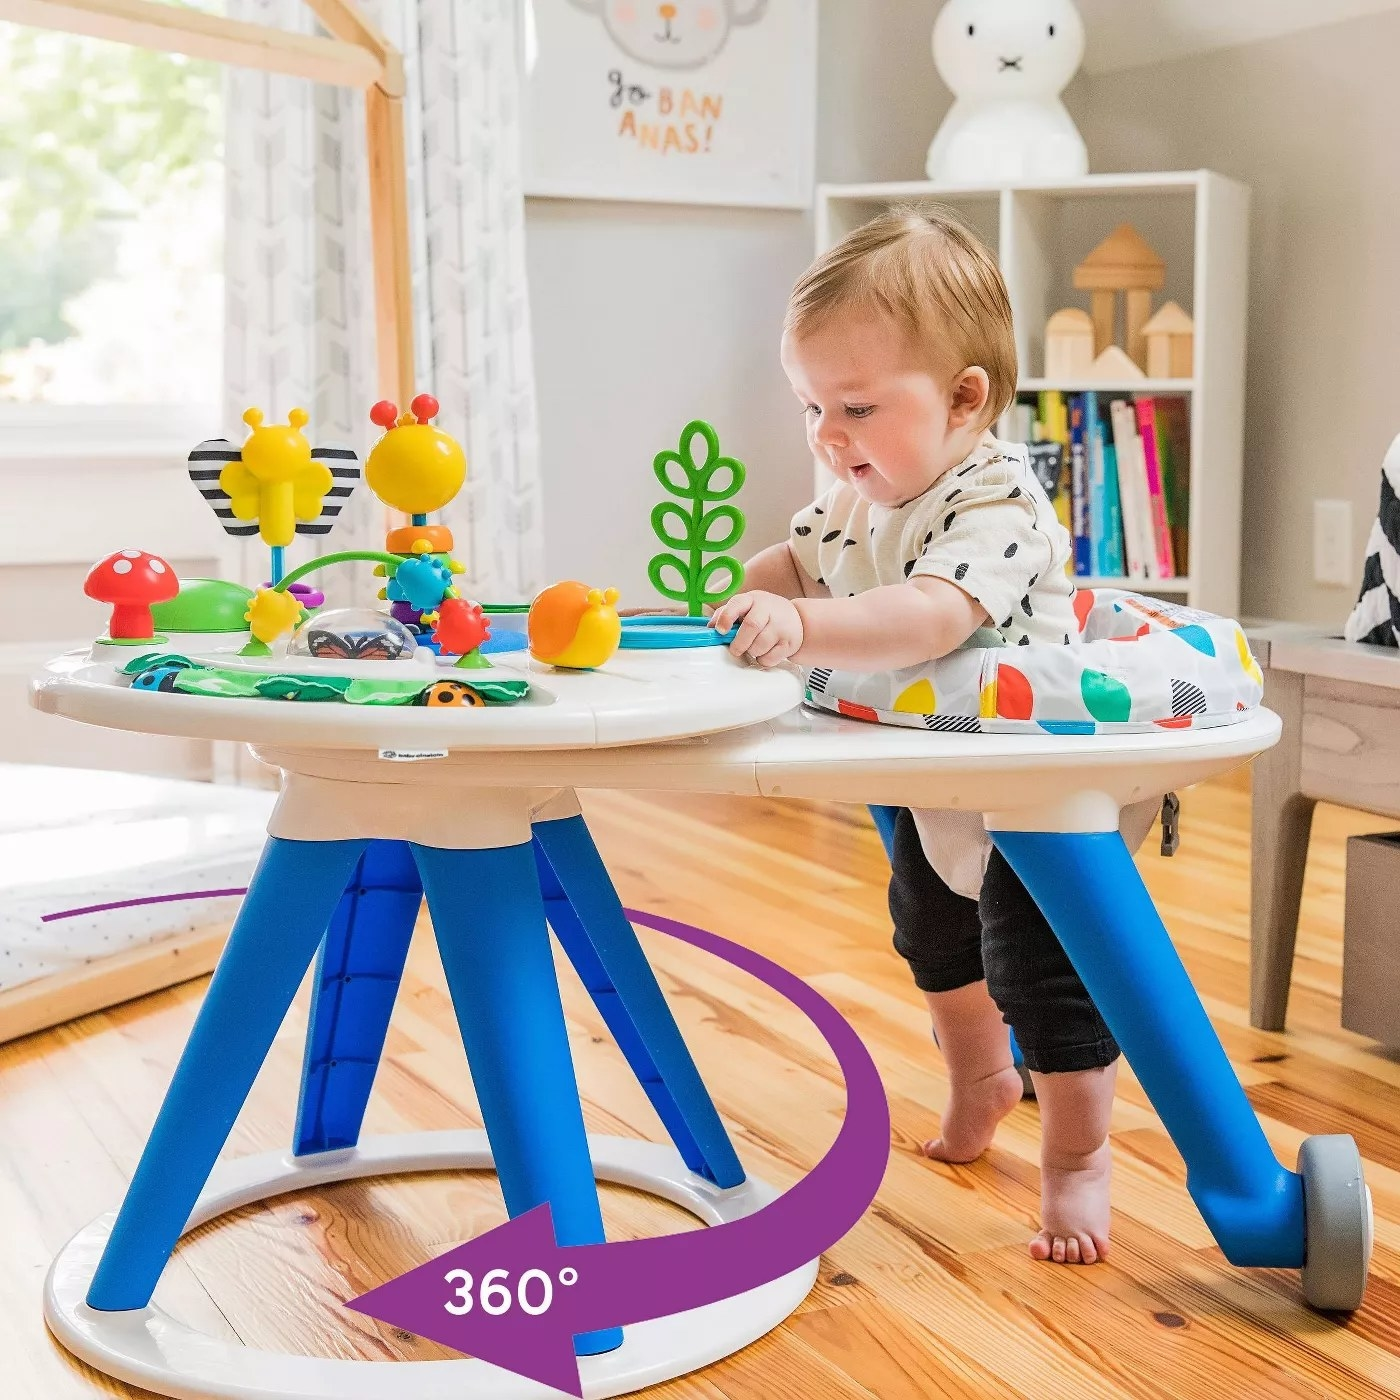 A baby in the activity center which can rotate 360 degrees